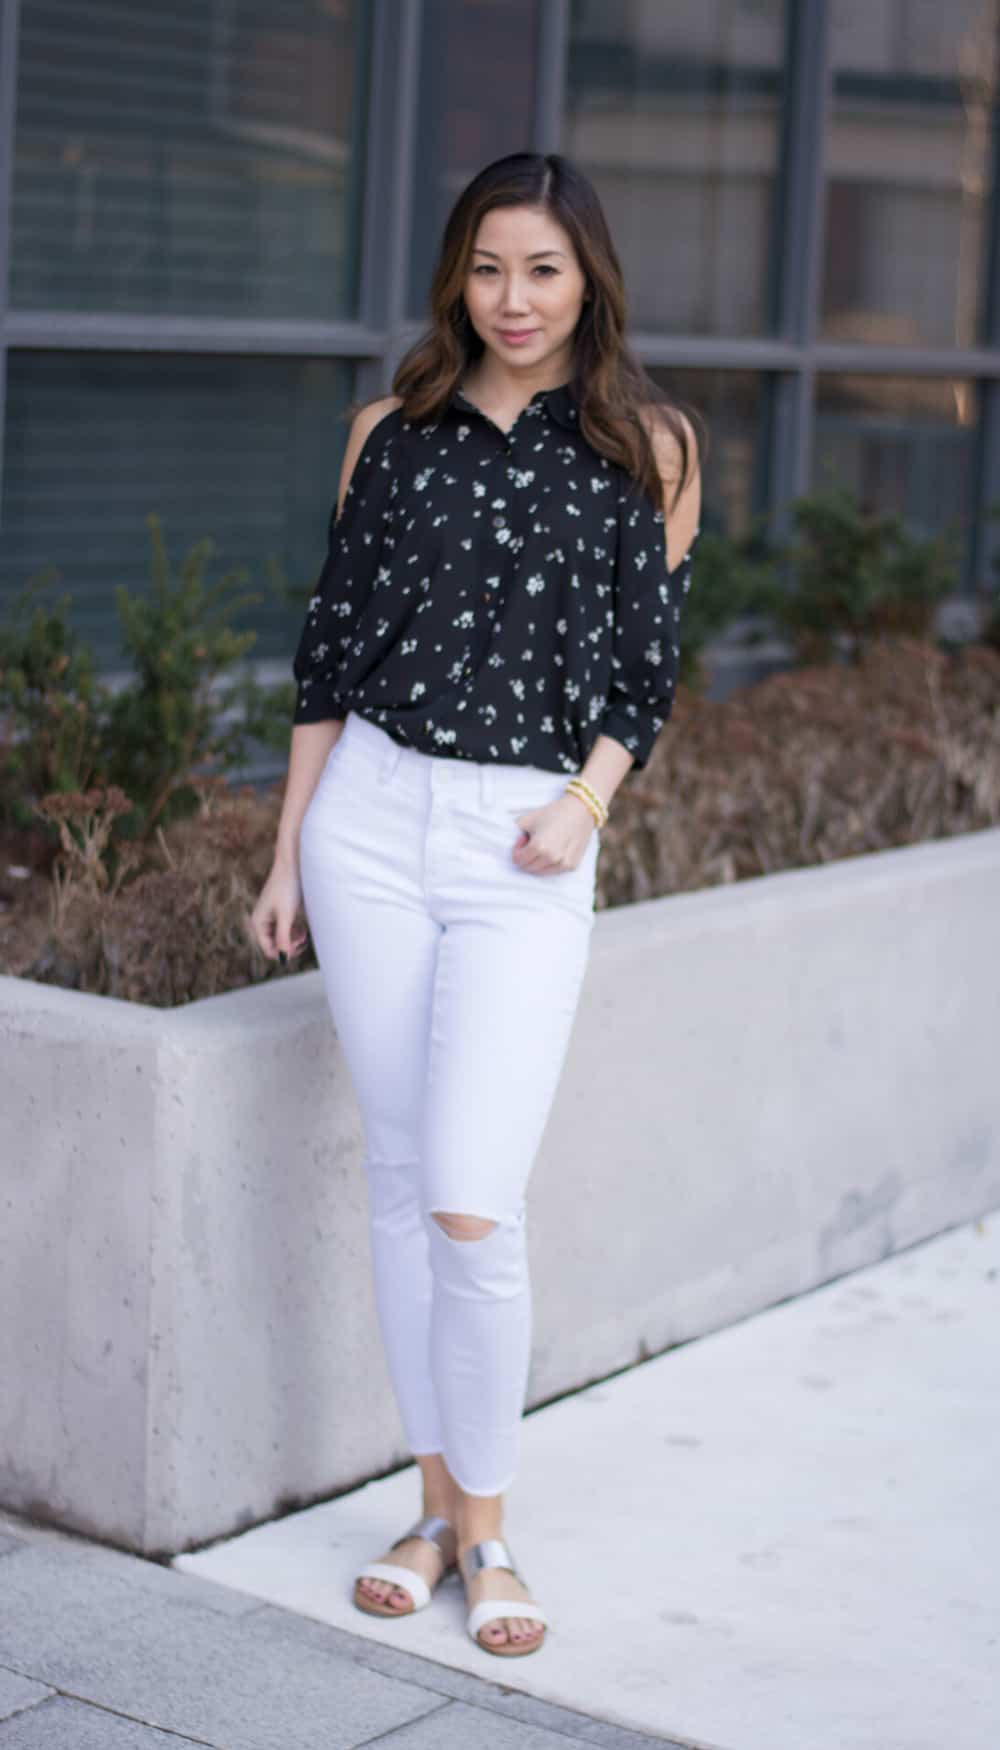 Fashion blogger streetstyle: Peek a boo shoulder blouse from LC Lauren Conrad